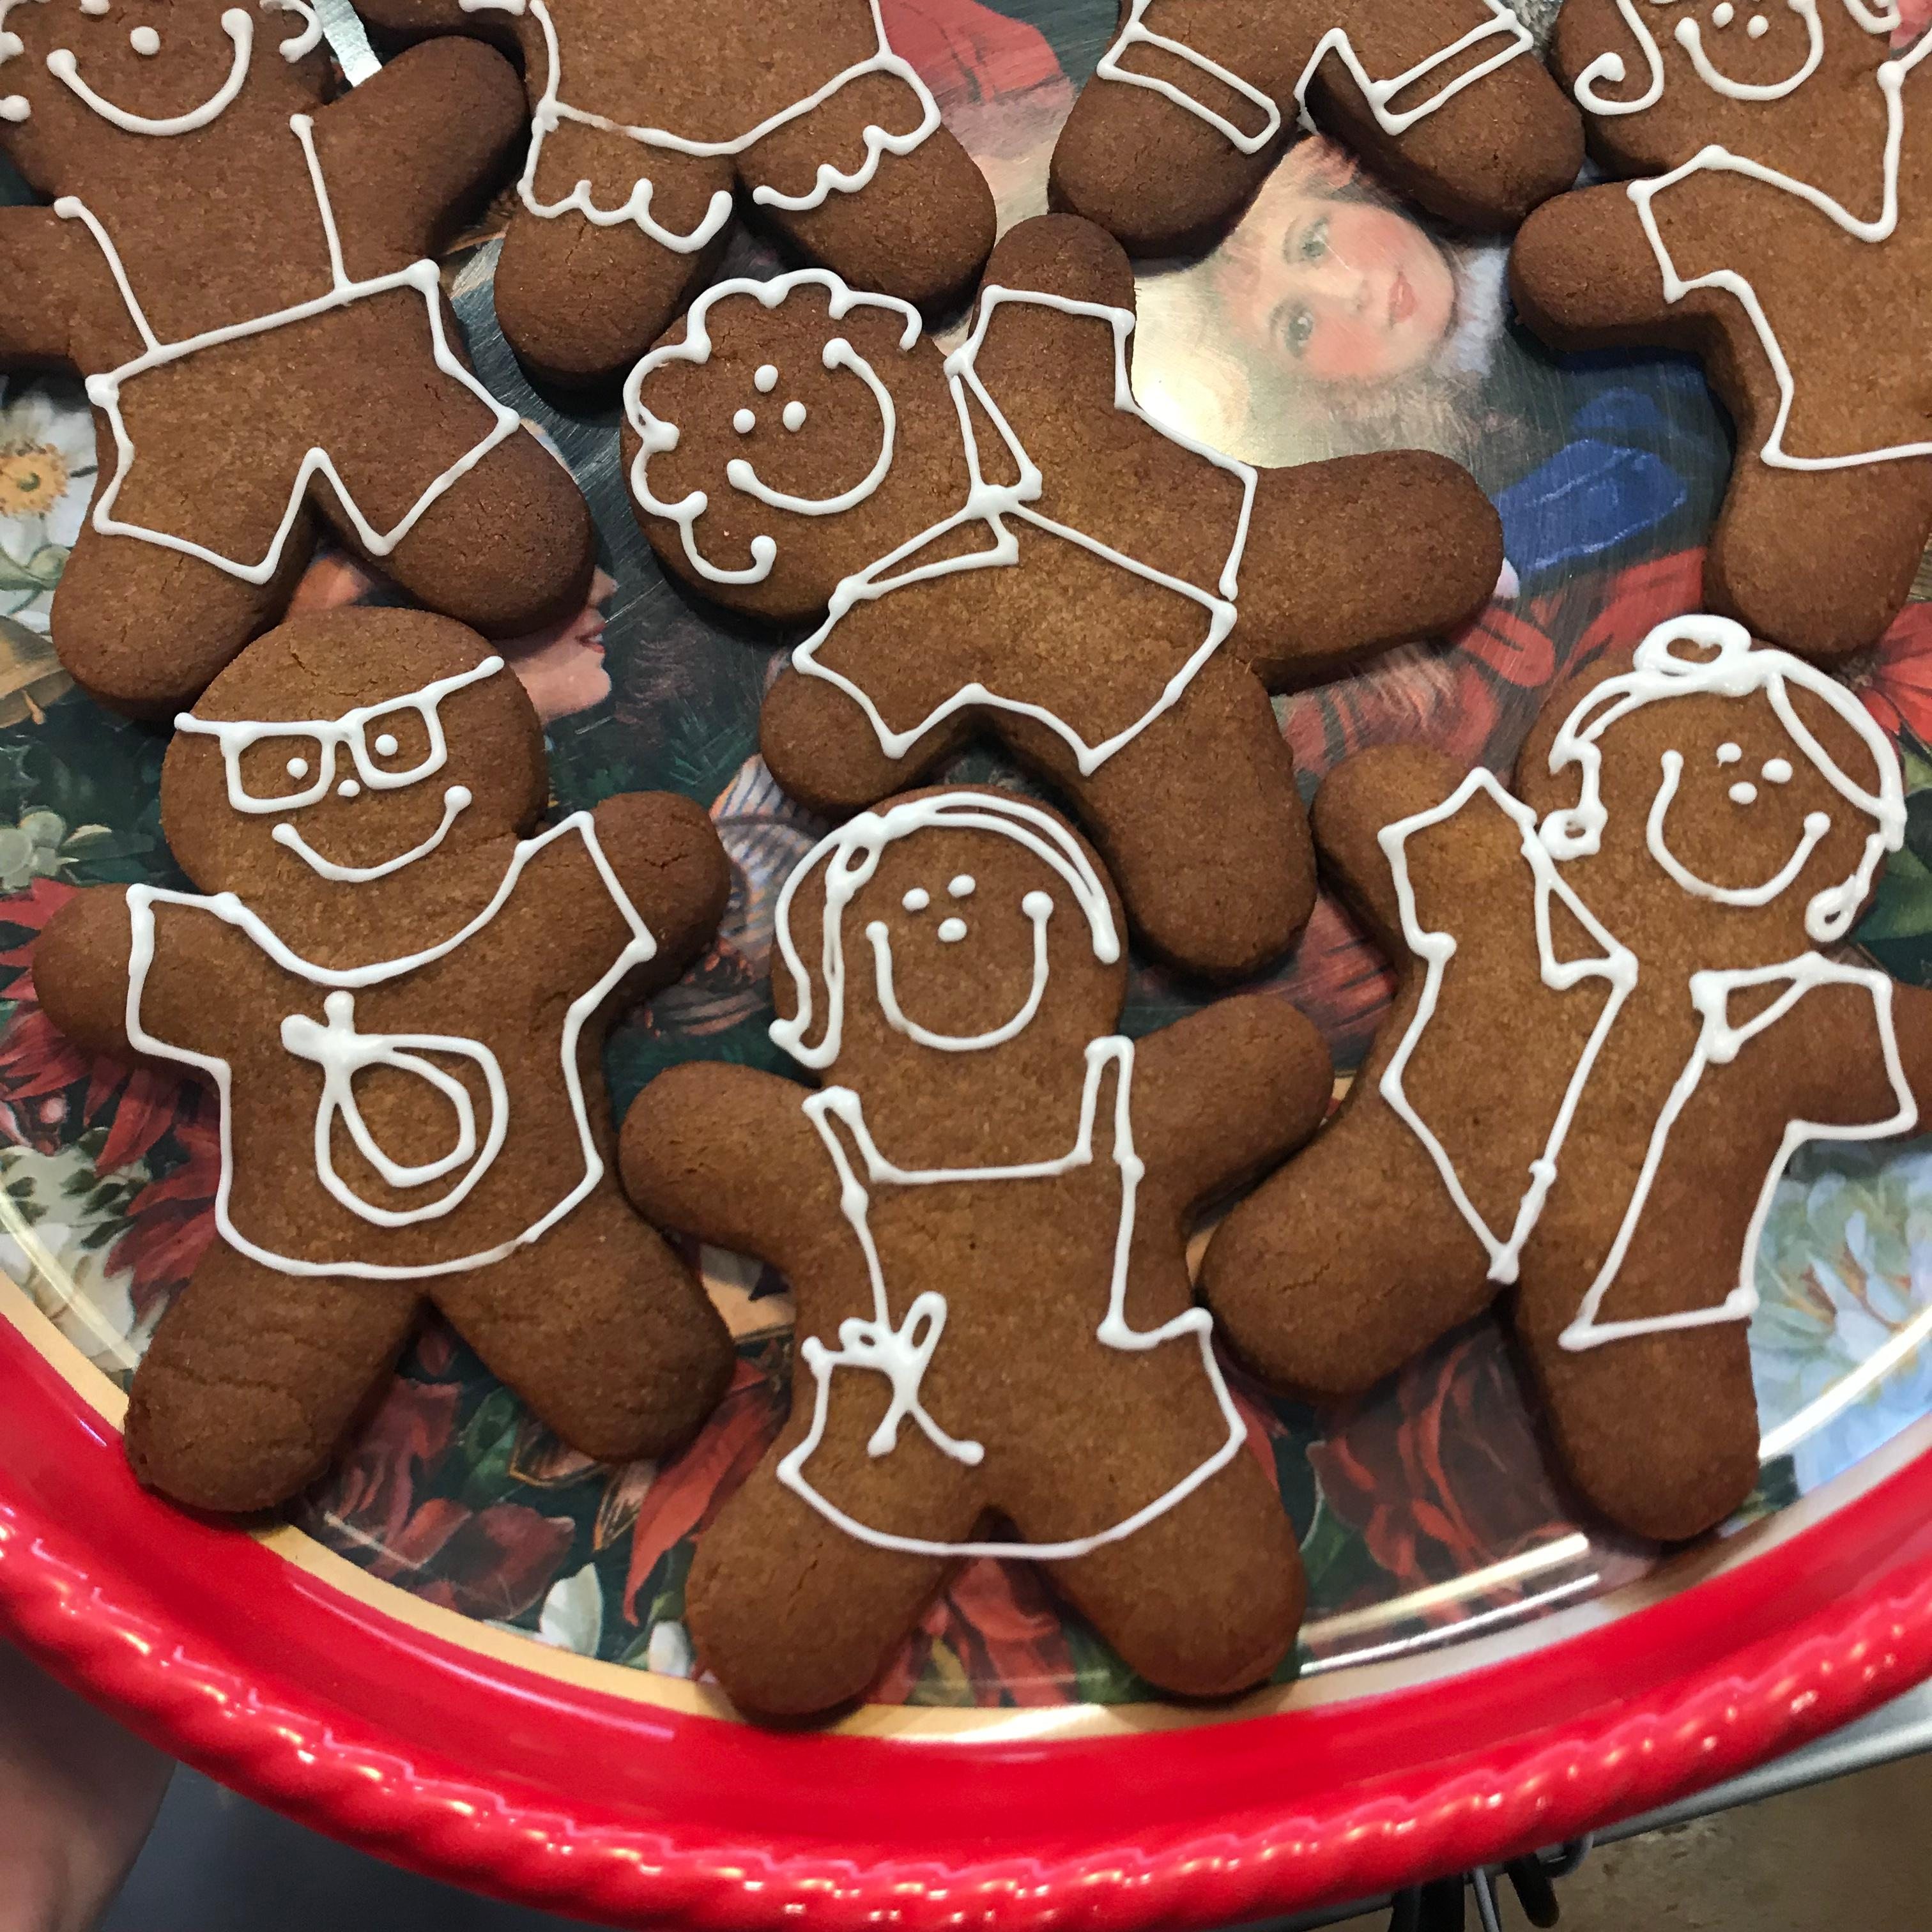 Pick up gingerbread men and women, Christmas tree meringue cookies and Yule logs with your choice of cake and frosting. (Image: Courtesy Red Bandana){&amp;nbsp;}<p></p>